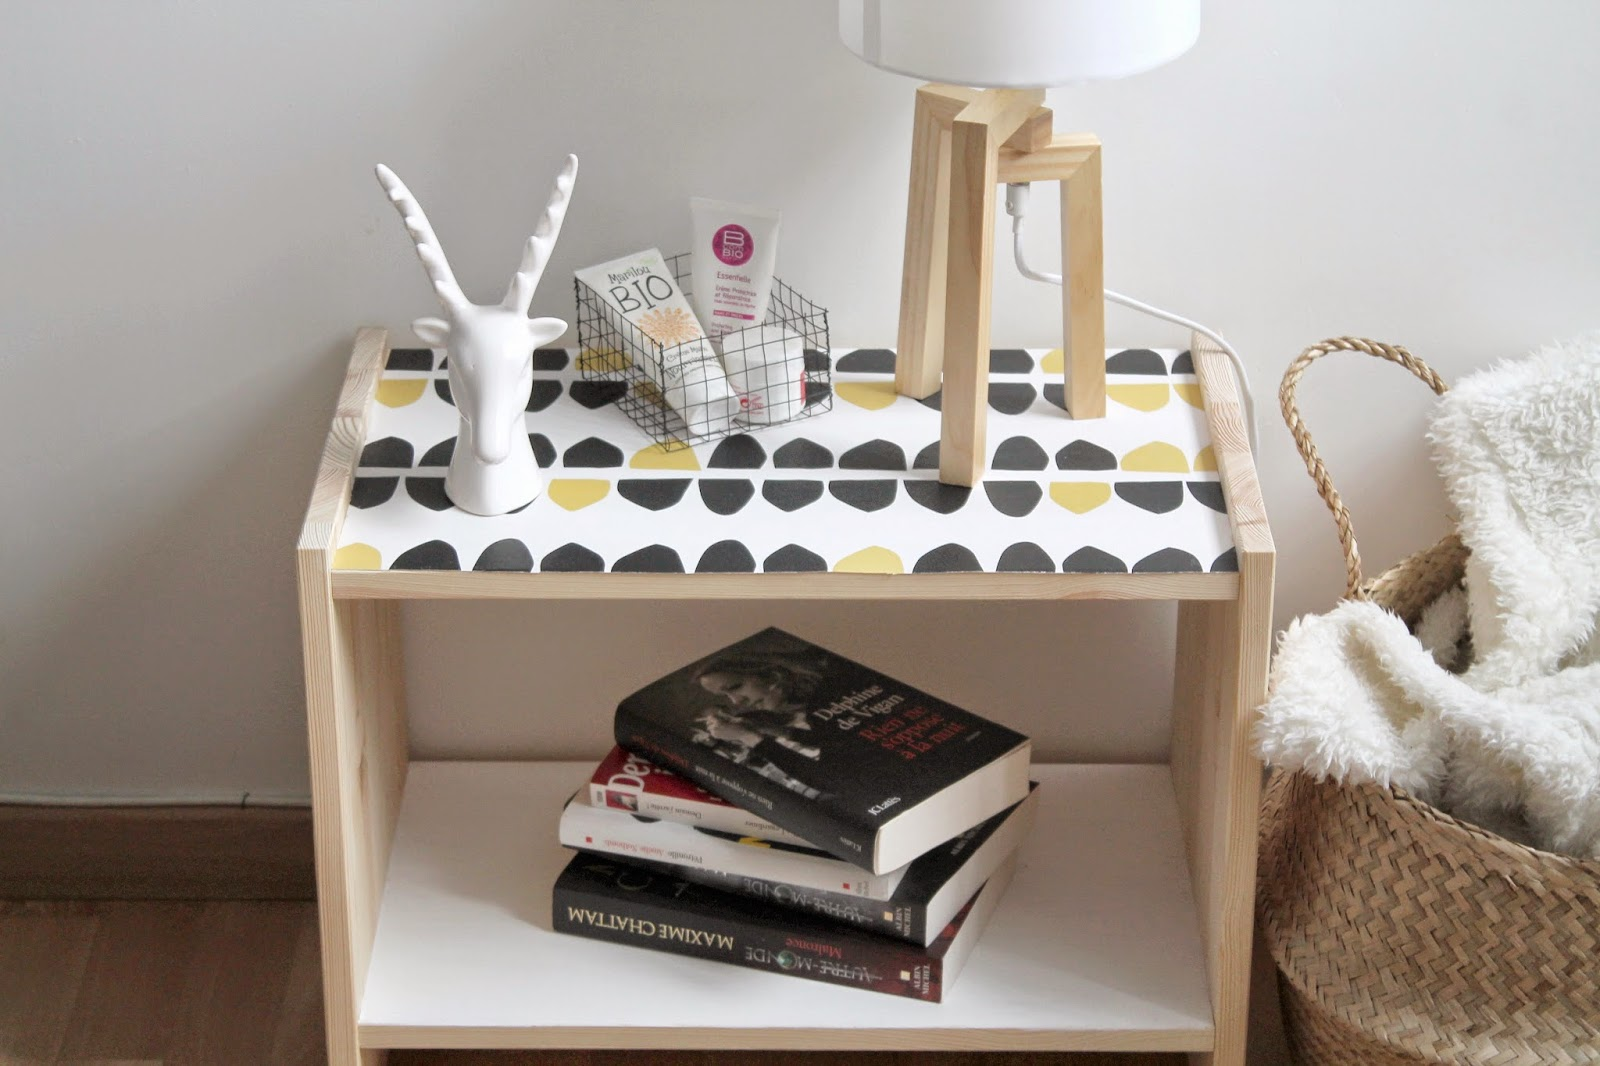 Diy customiser la table de chevet rast le bazar d for Table de chevet basse